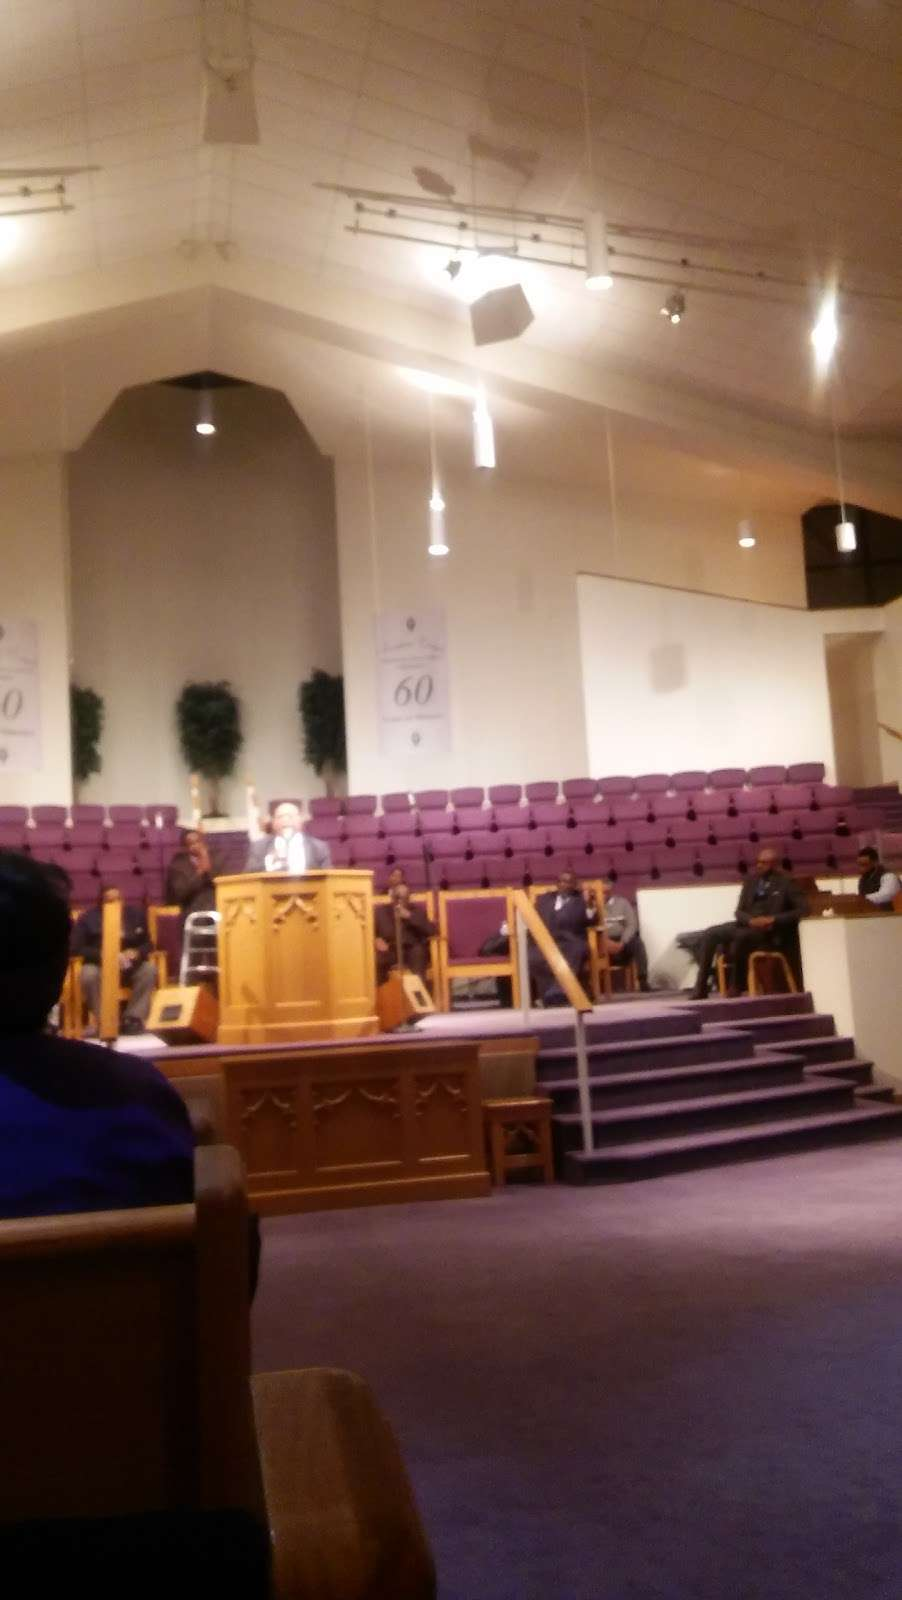 Freedom Temple Church of God - church  | Photo 9 of 10 | Address: 1459 W 74th St, Chicago, IL 60636, USA | Phone: (773) 483-1140